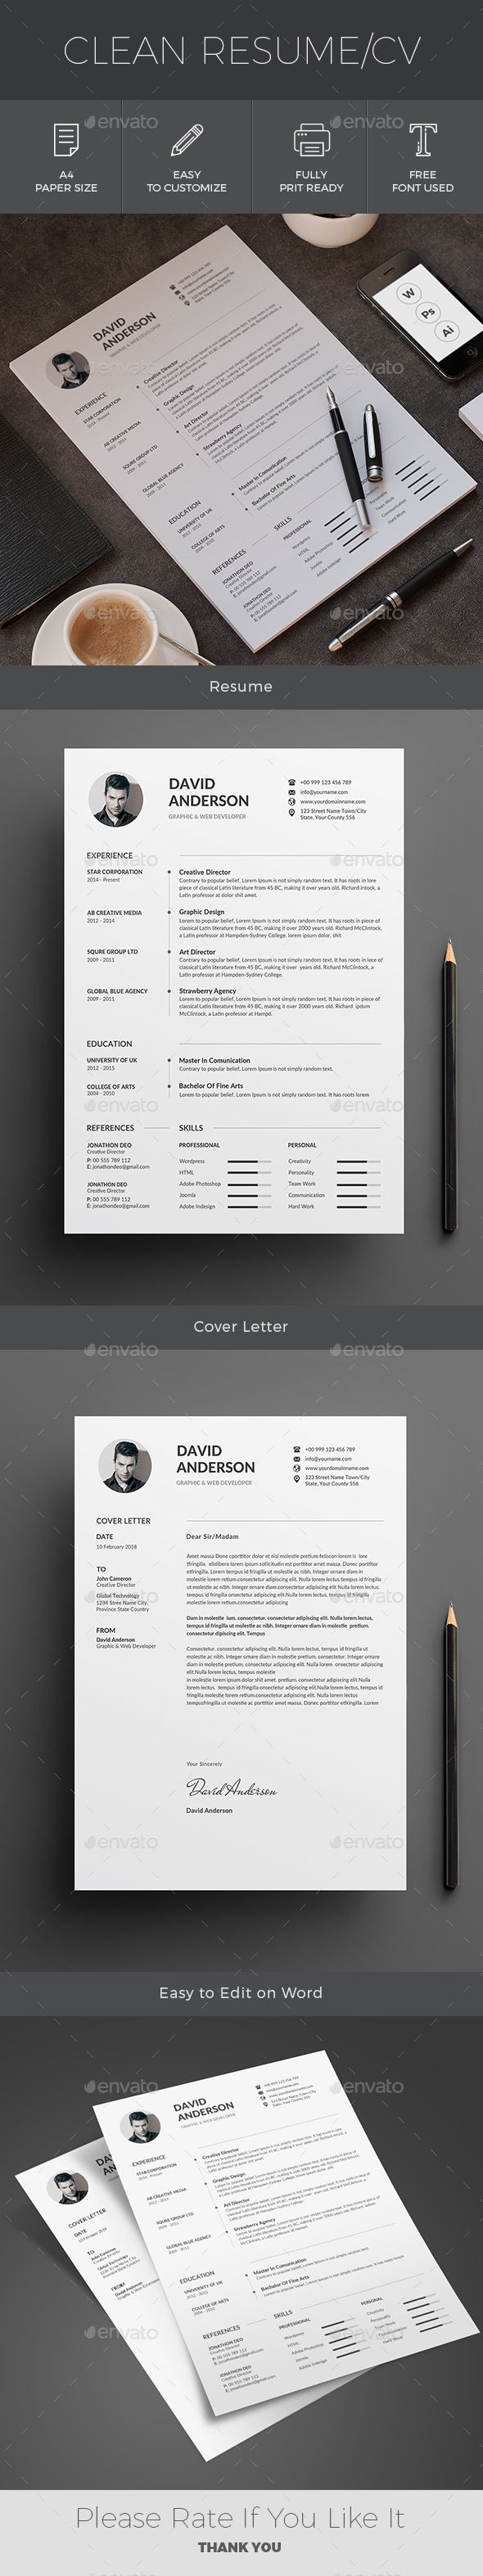 Cv Templates Pdf%0A Resume  u     AI Illustrator  cv template  word  u     Download     https